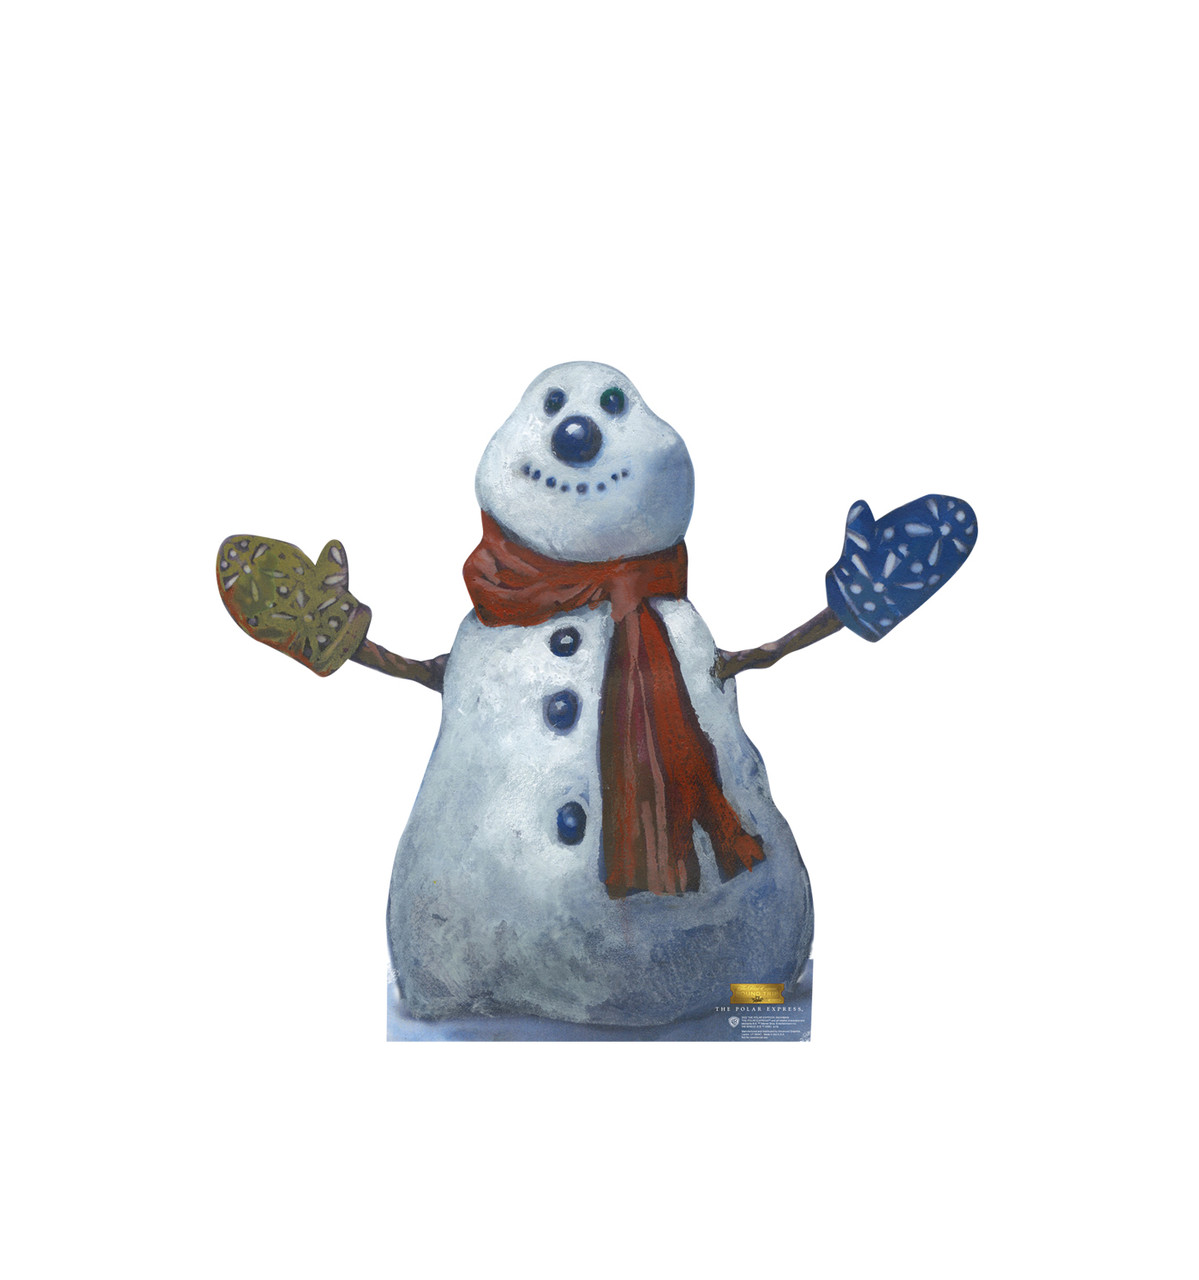 Life-size cardboard standee of the Polar Express Snowman from The Polar Express.